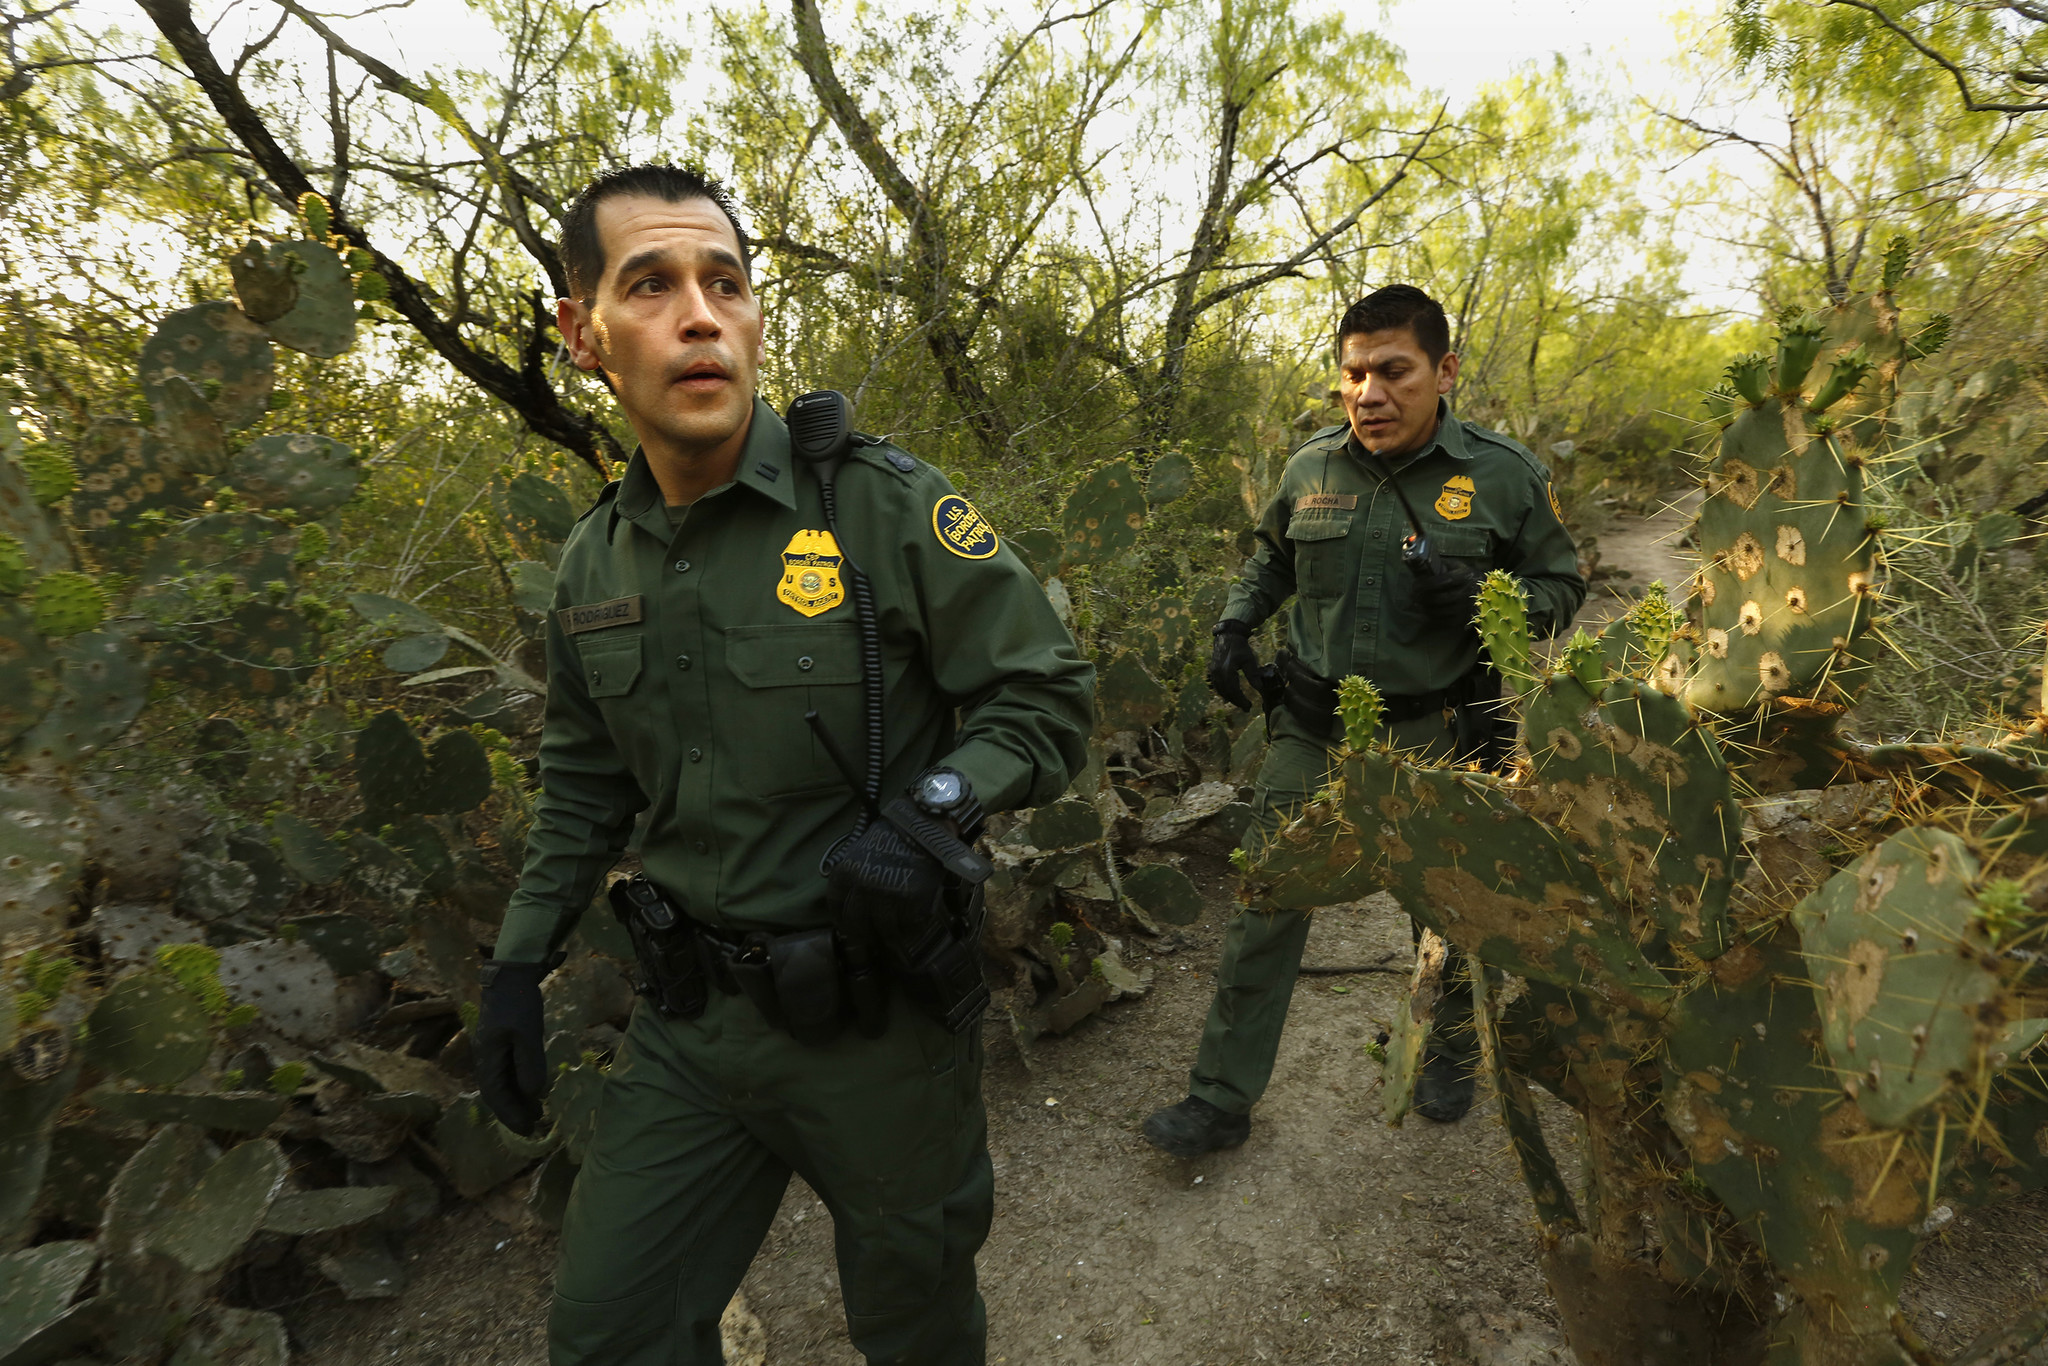 Border Patrol agents in Texas